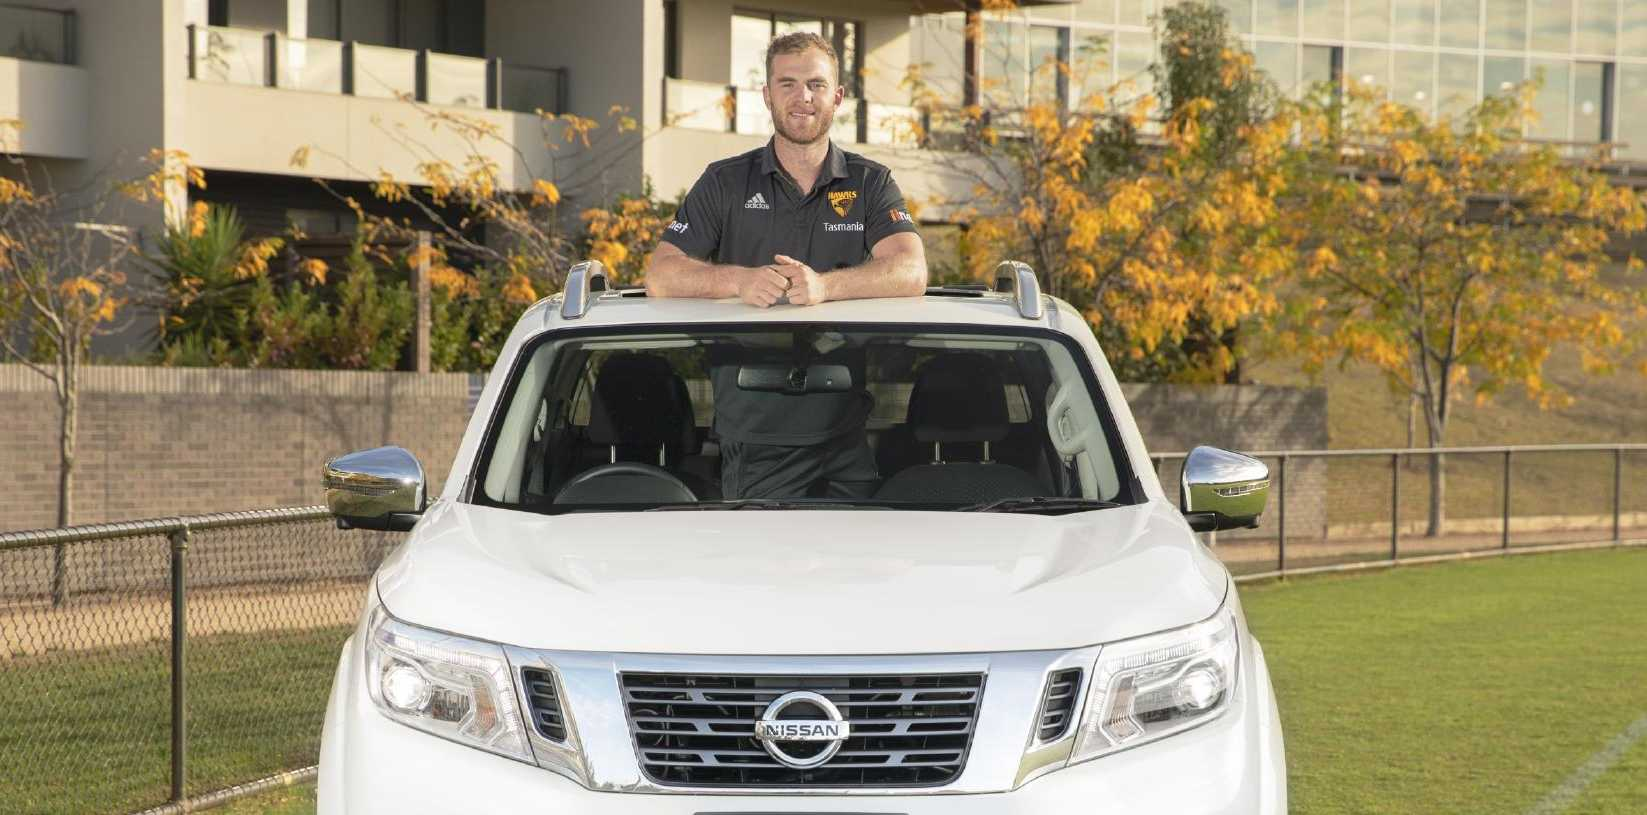 Hawks' Tom Mitchell in his Nissan Navara ute.